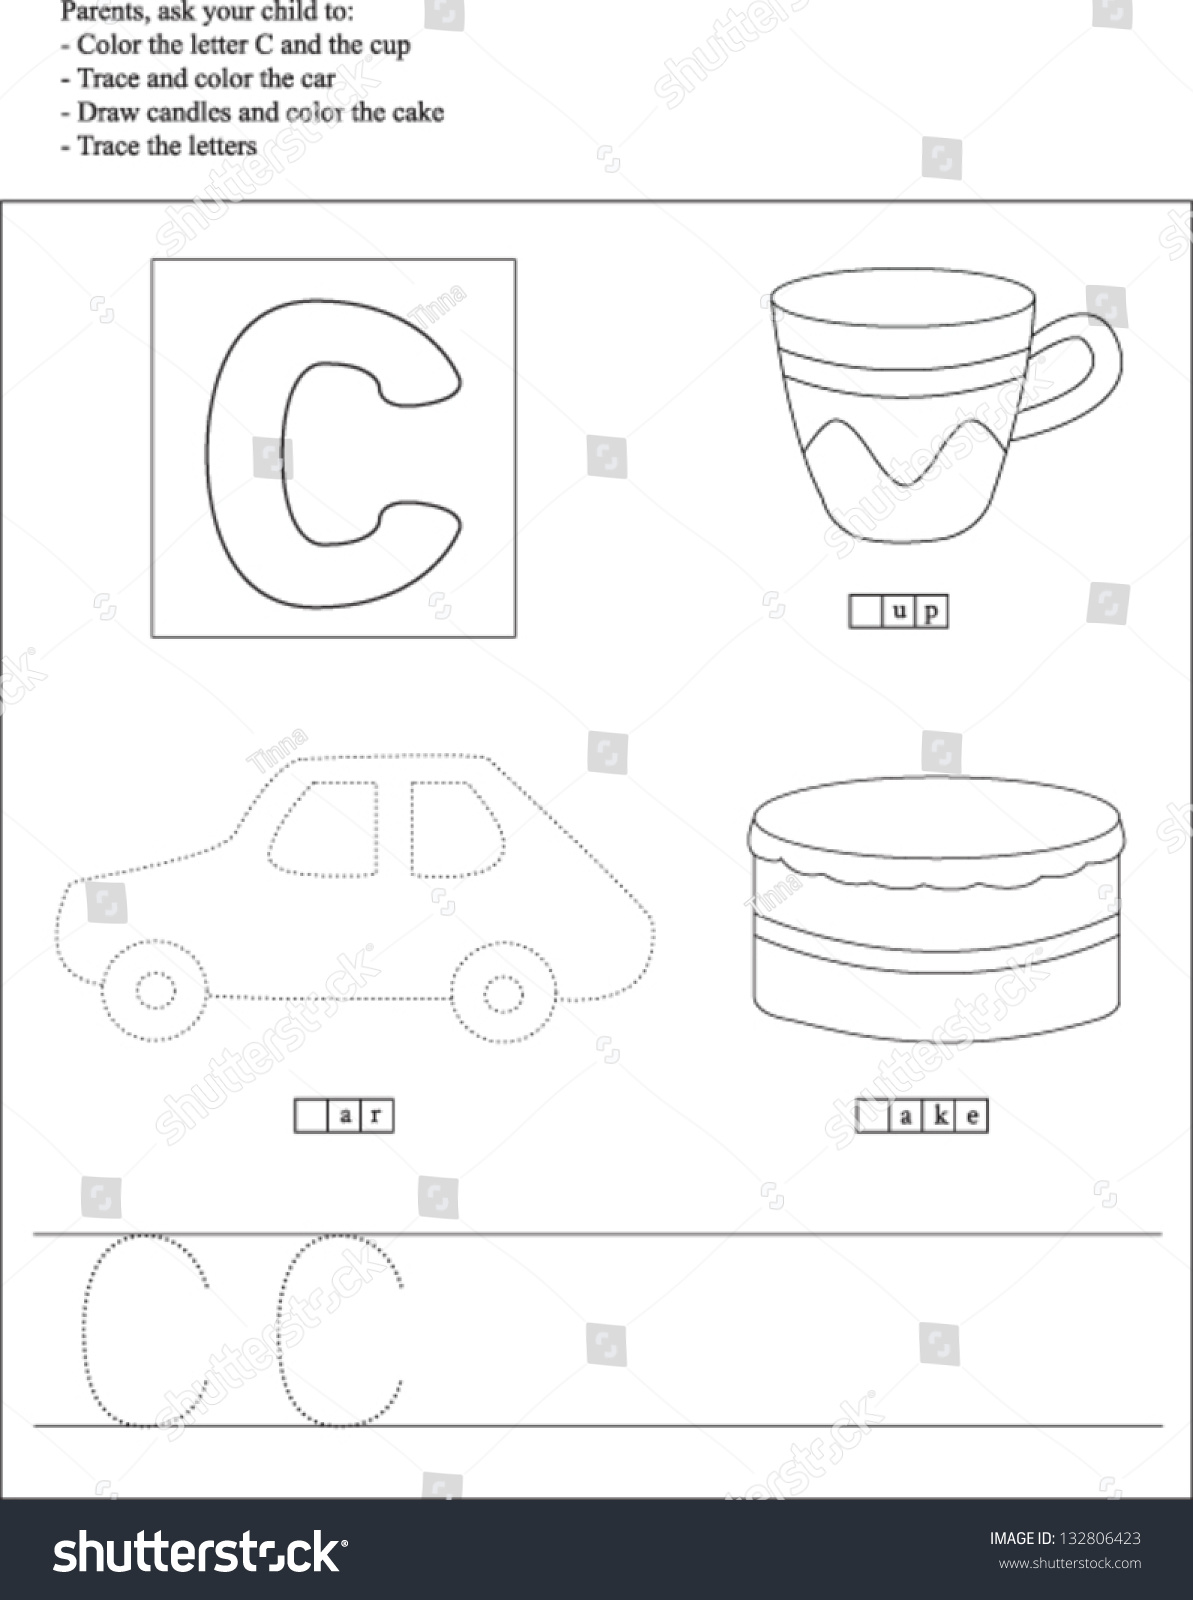 Trace Color Letter C Worksheet Preschoolers Vector 132806423 – Letter C Worksheets for Preschool